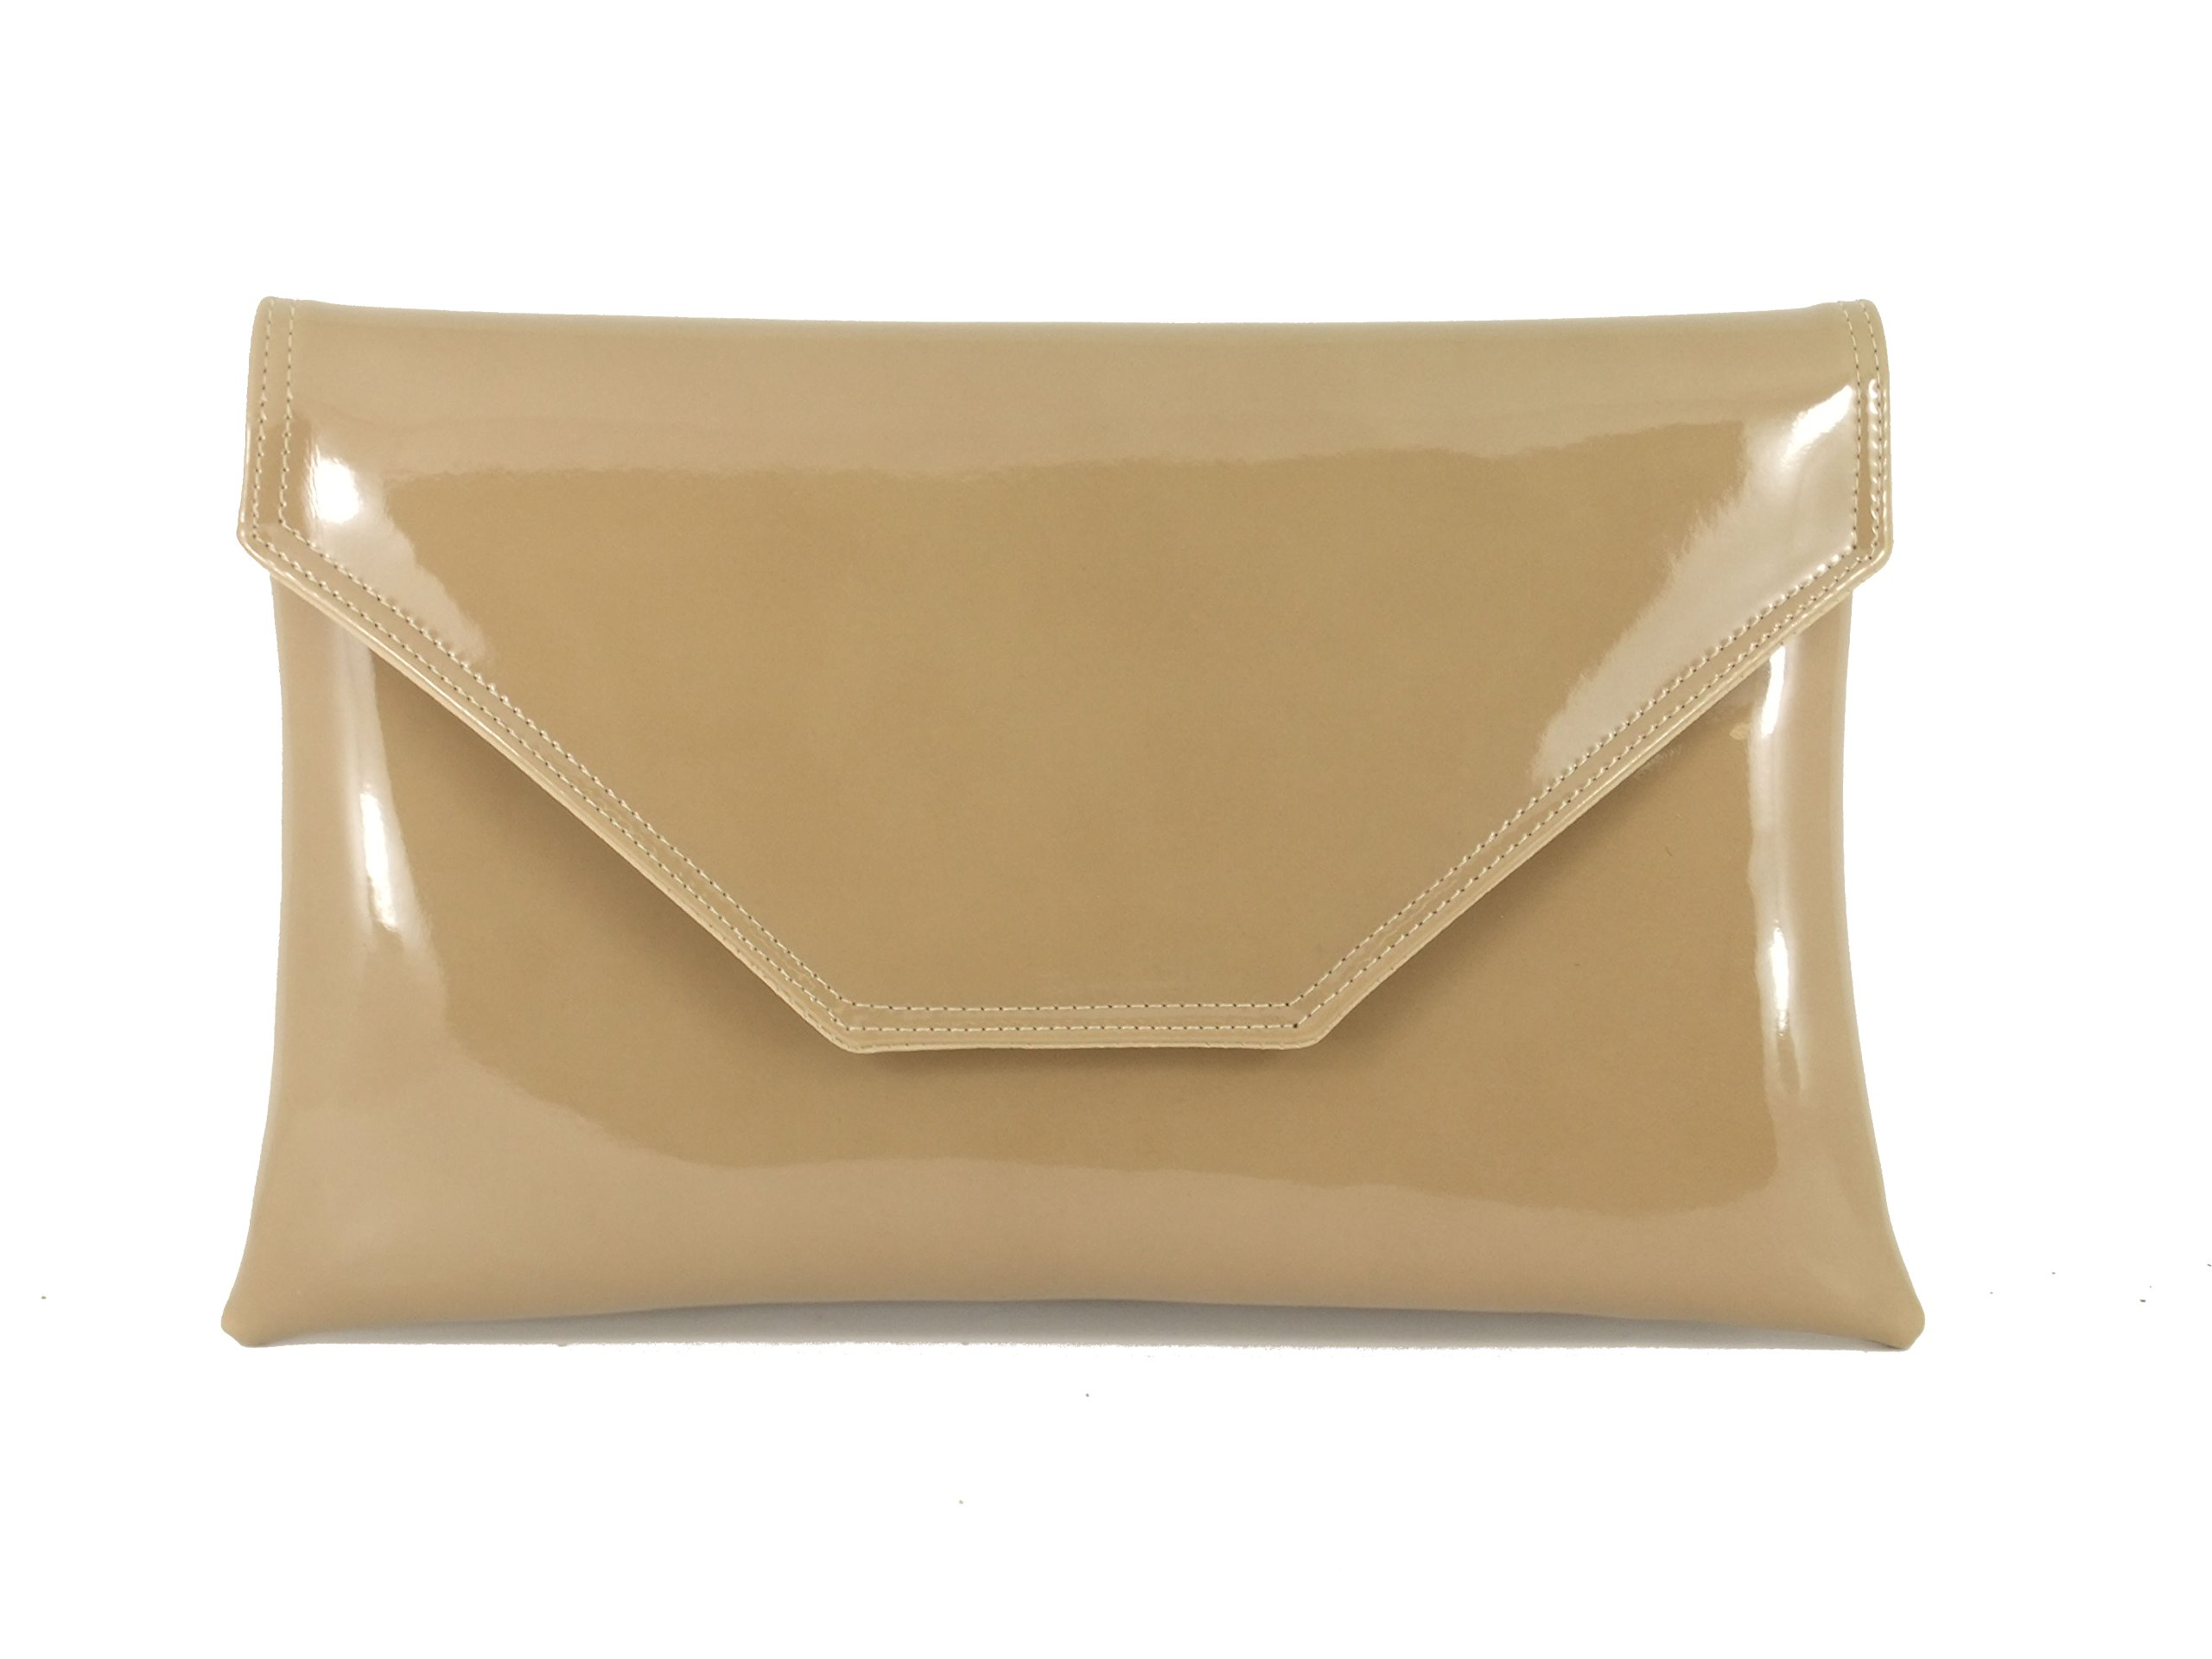 Loni Womens Stylish Large Envelope Patent Clutch Bag Shoulder Bag Wedding  Party Prom Bag efbabd0322b5a